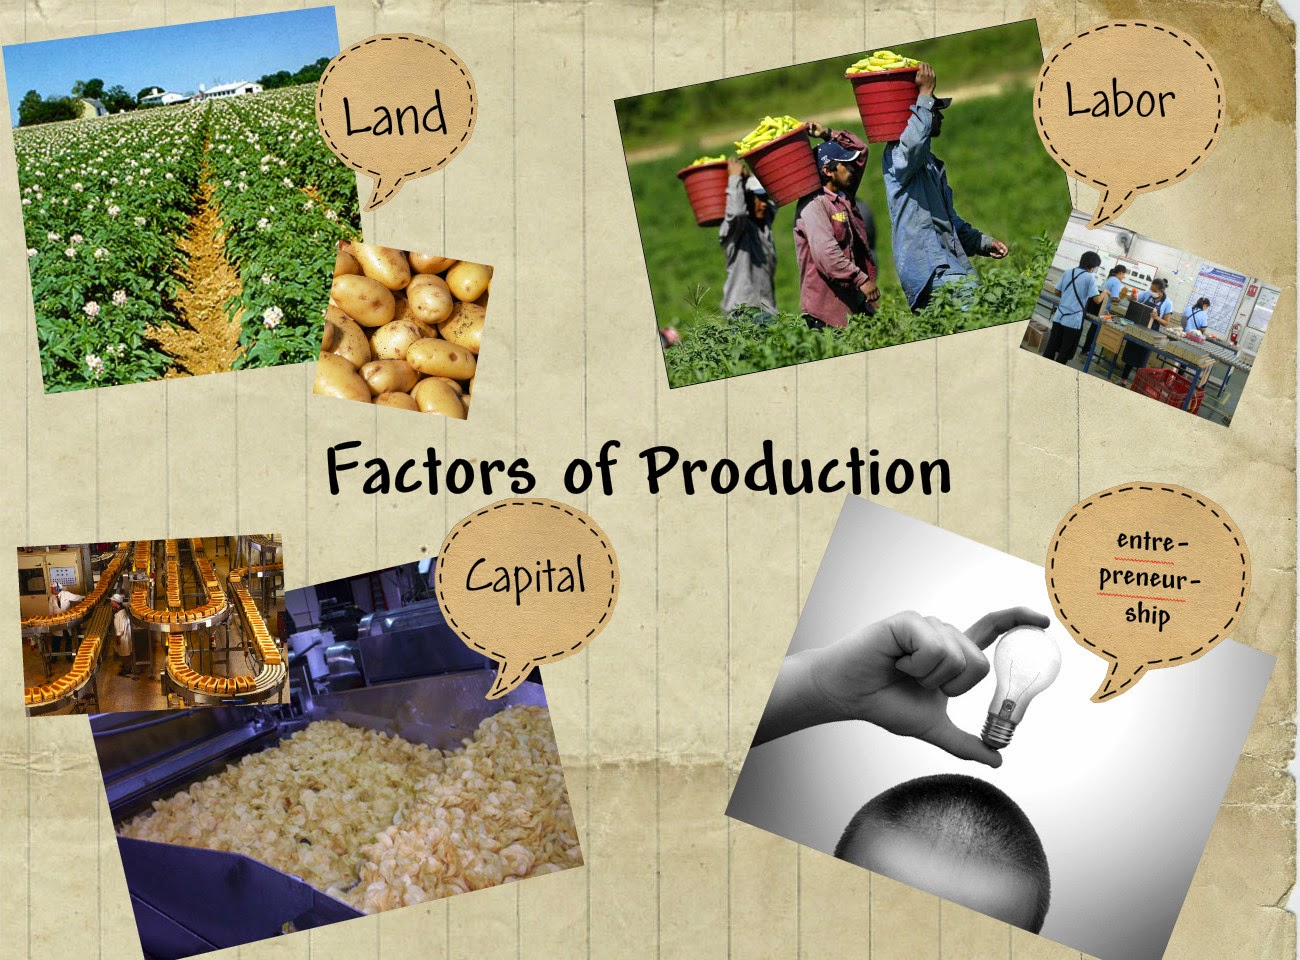 Labor as a factor of production 37